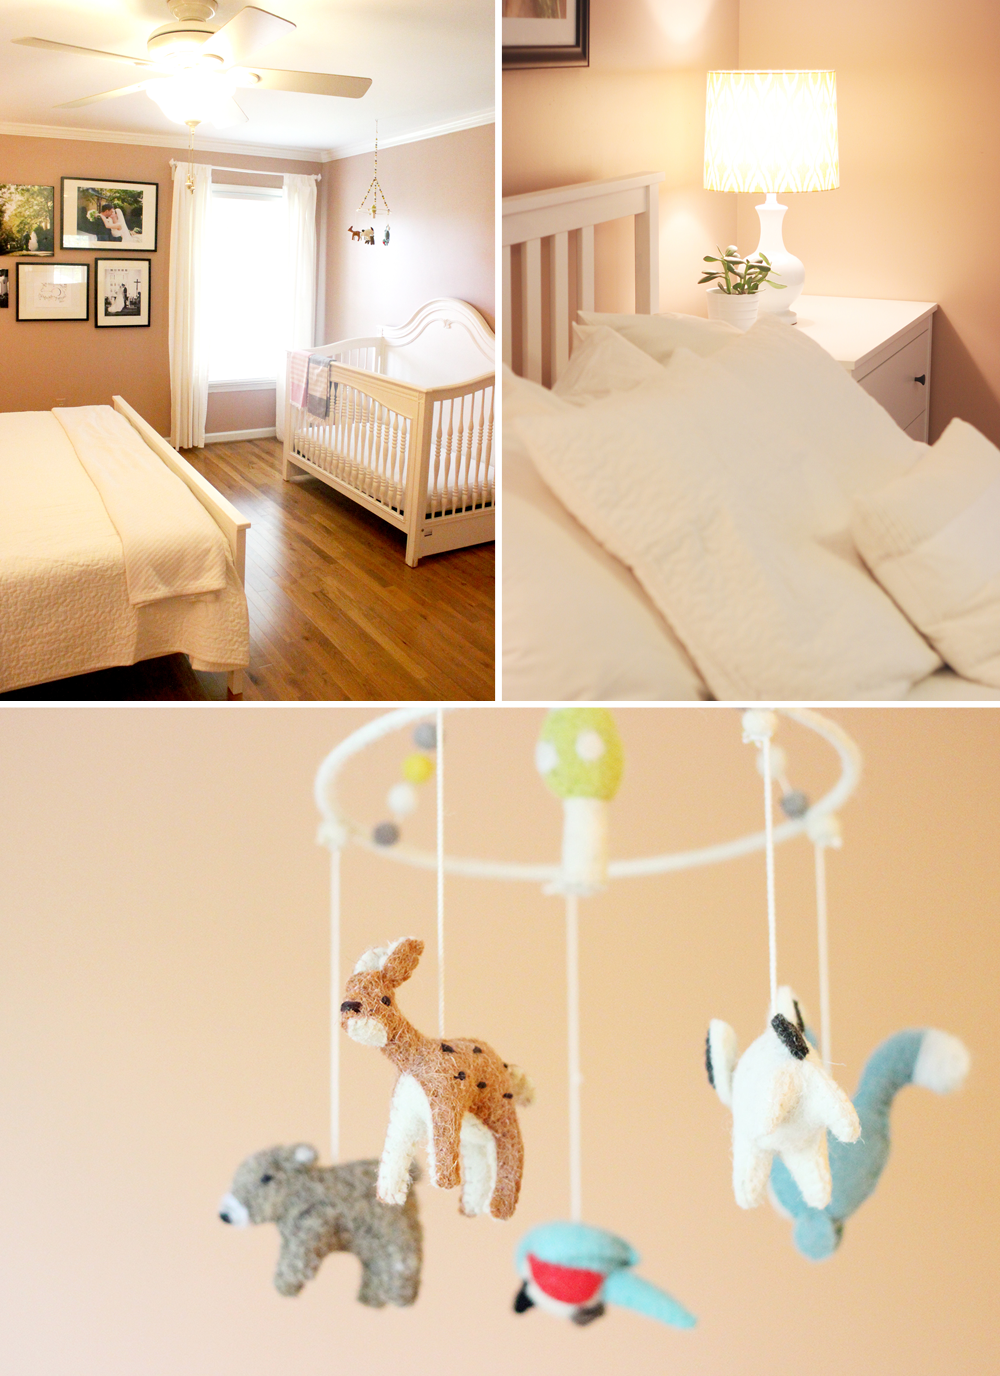 Our Master Bedroom And Newborn Set Up At Home With Natalie